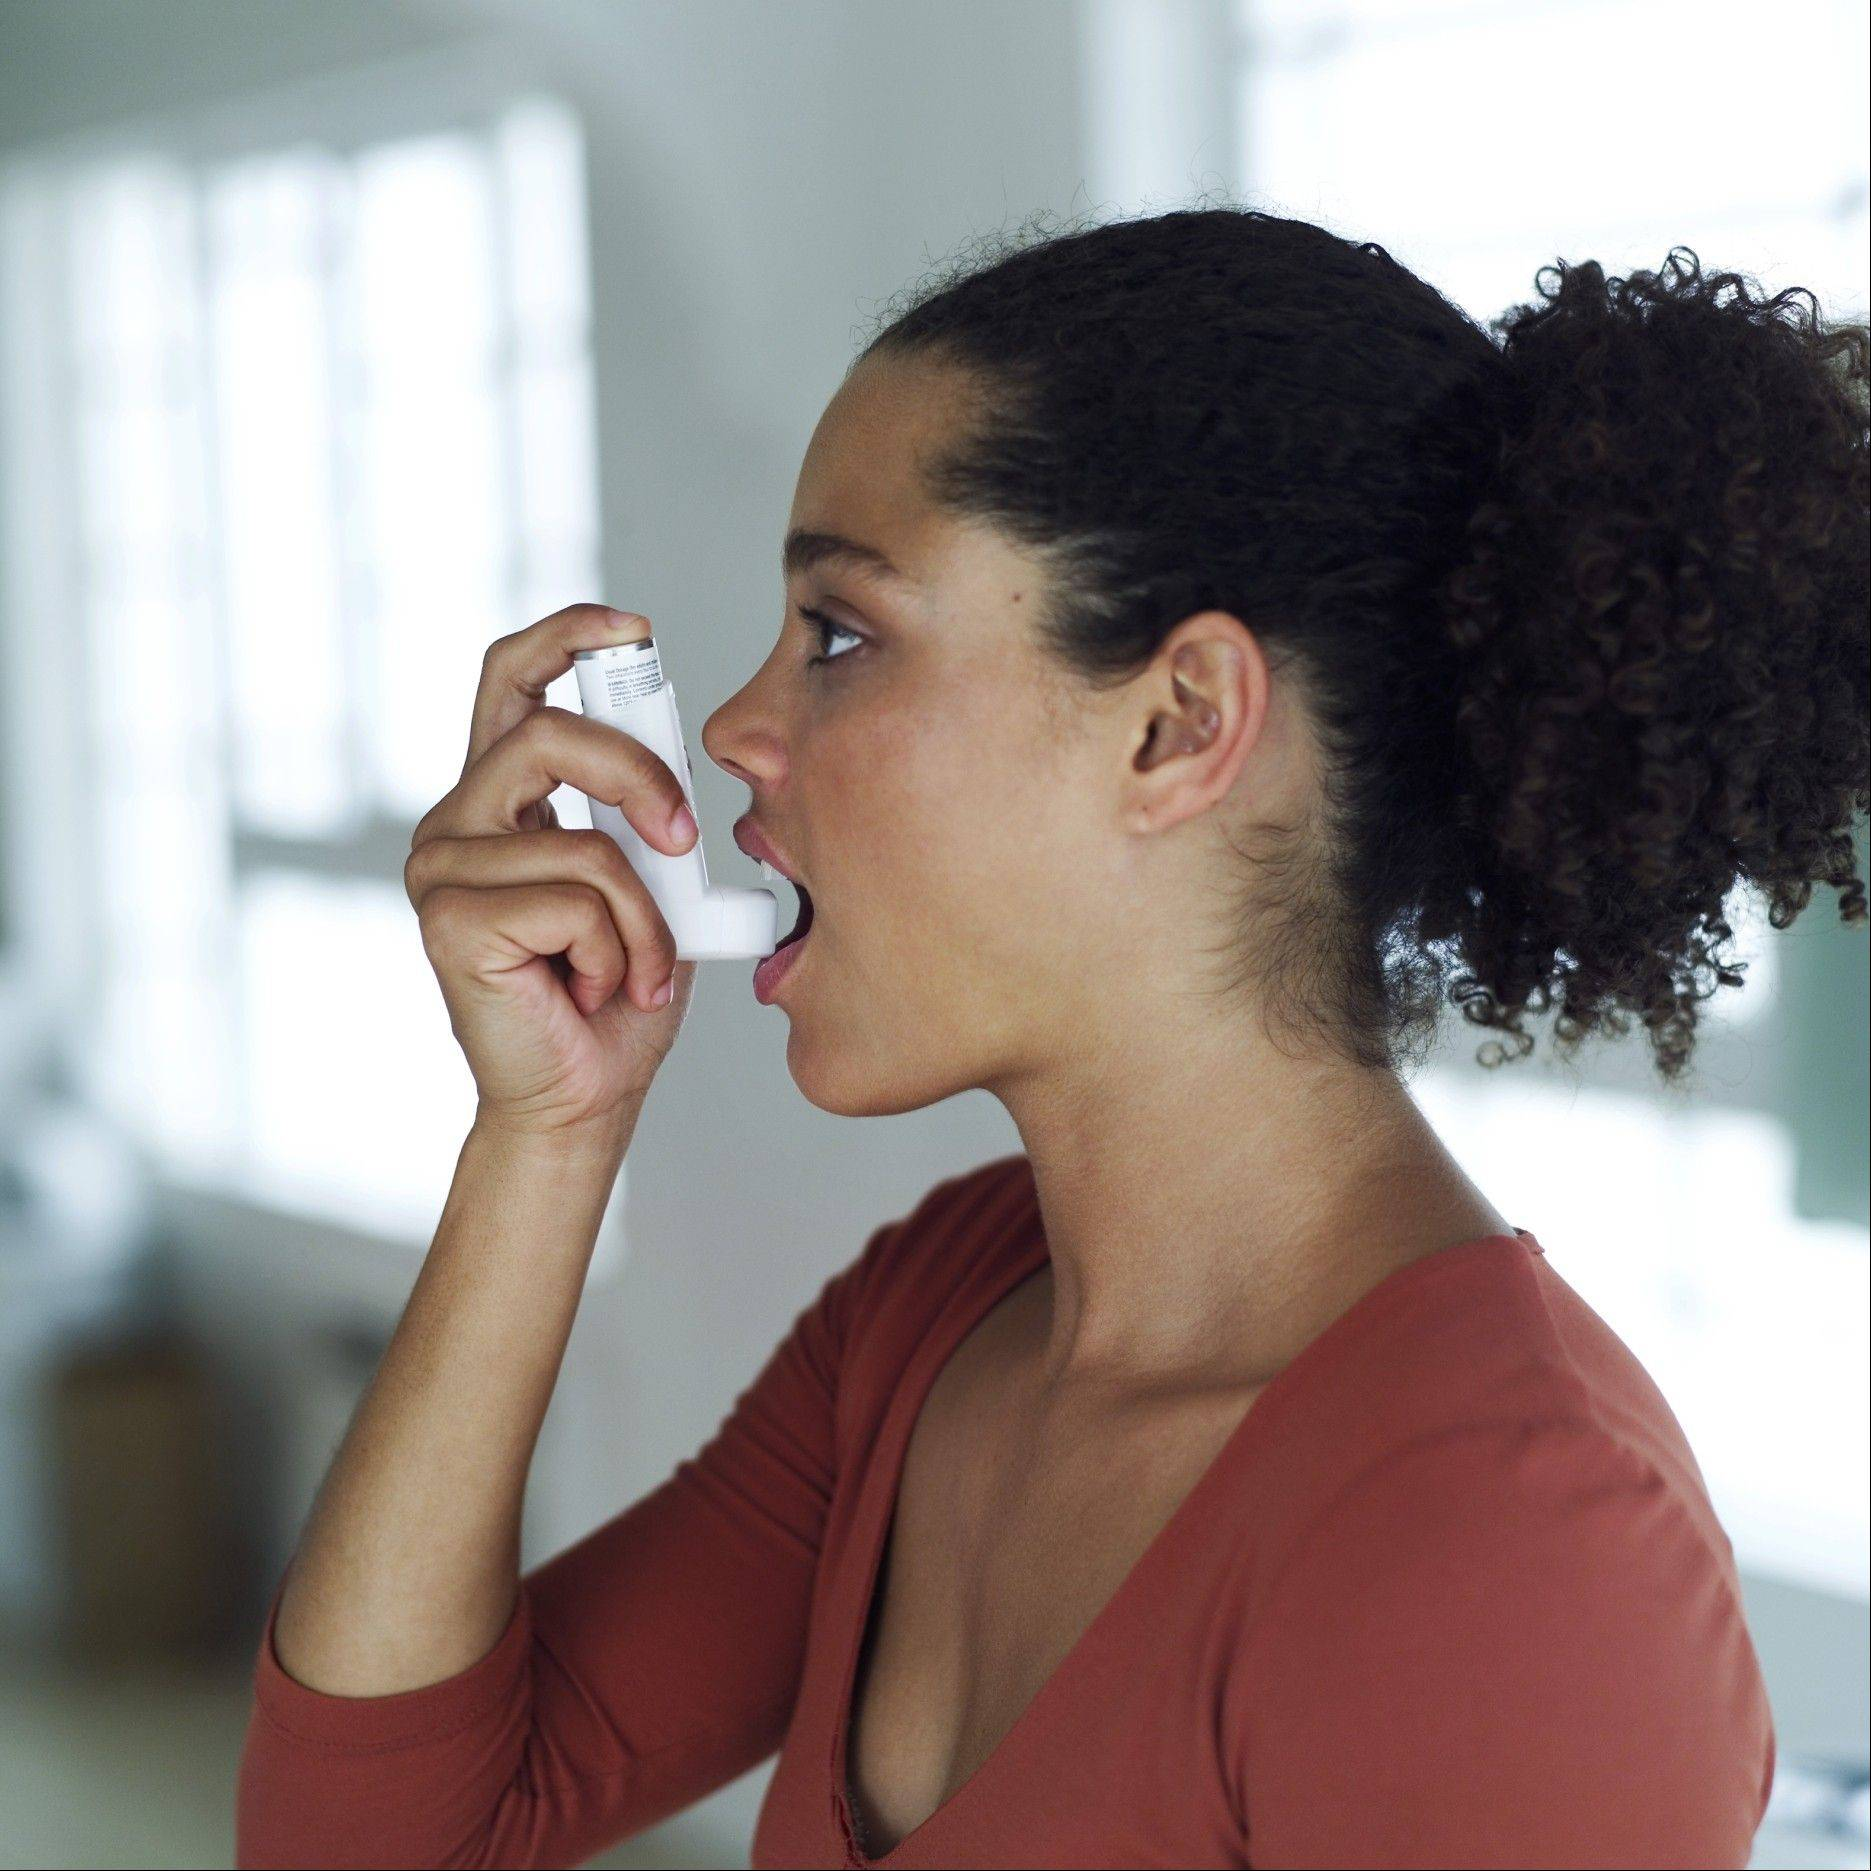 Understanding asthma is the first step in managing the disease for your own quality of life.